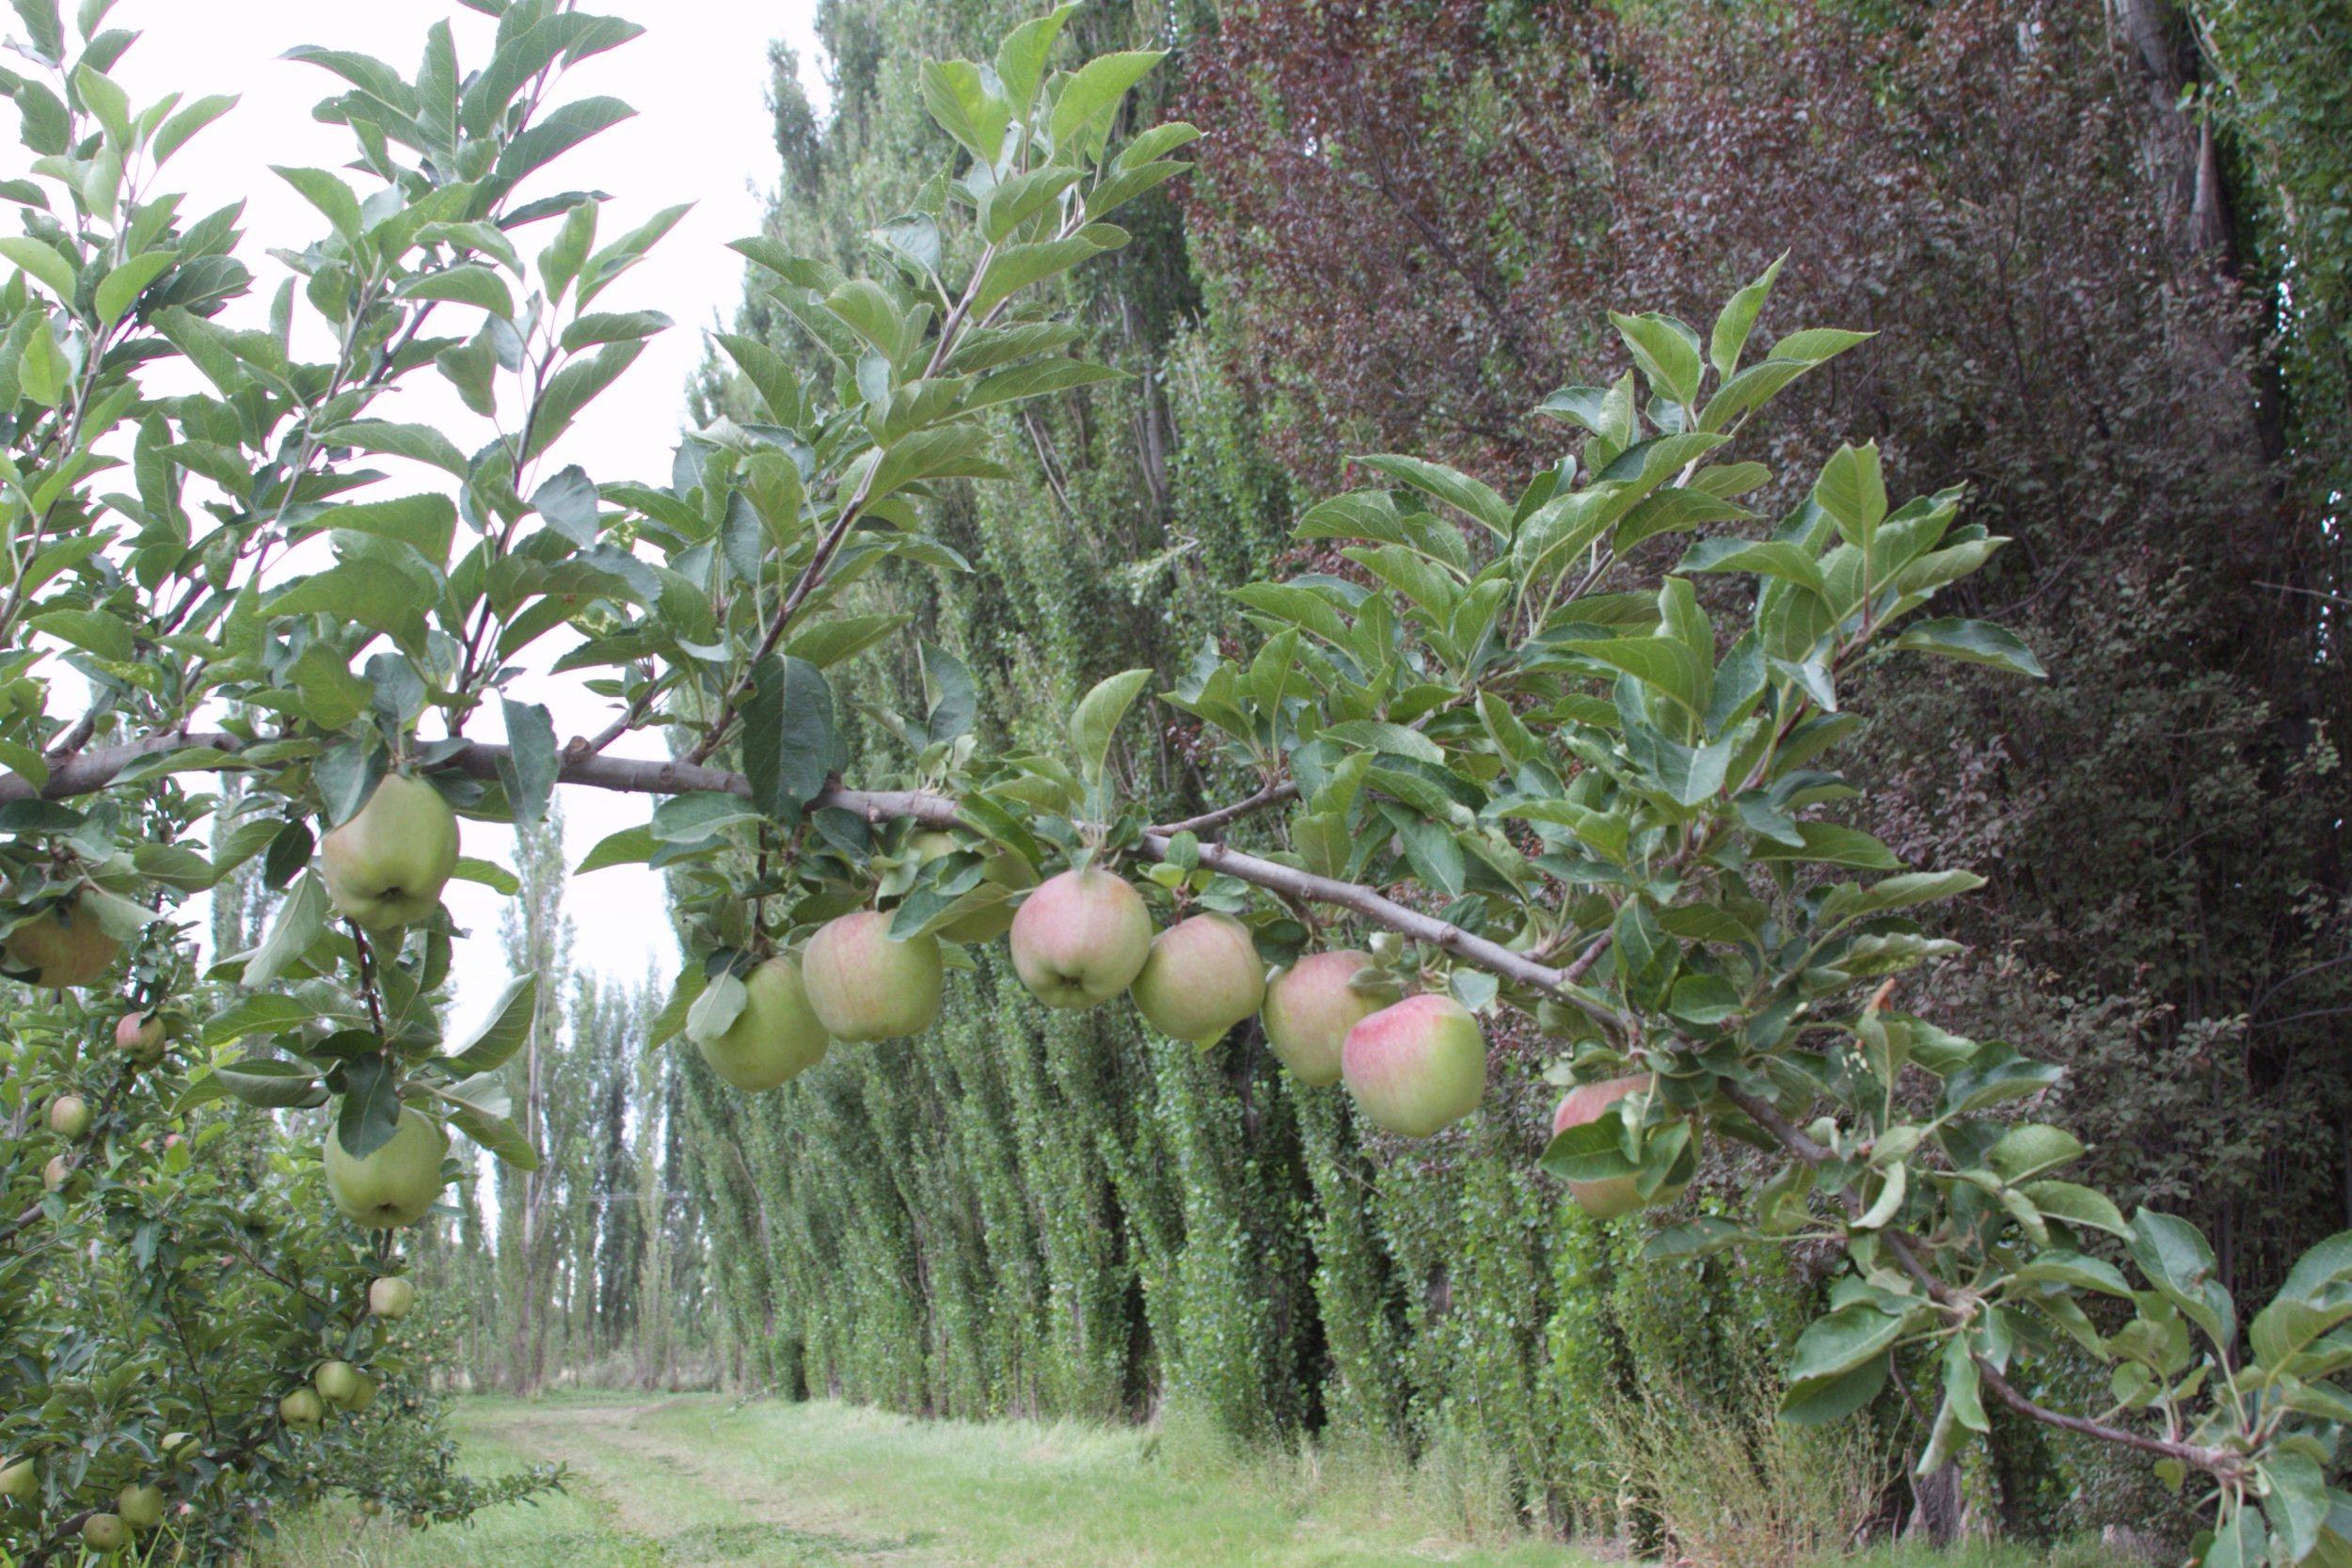 Planting windbreaks increases Grade-A fruit production by 19%. Wind causes fruit to drop too early, simply not grow as large, and rub on branches which causes cosmetic damage.